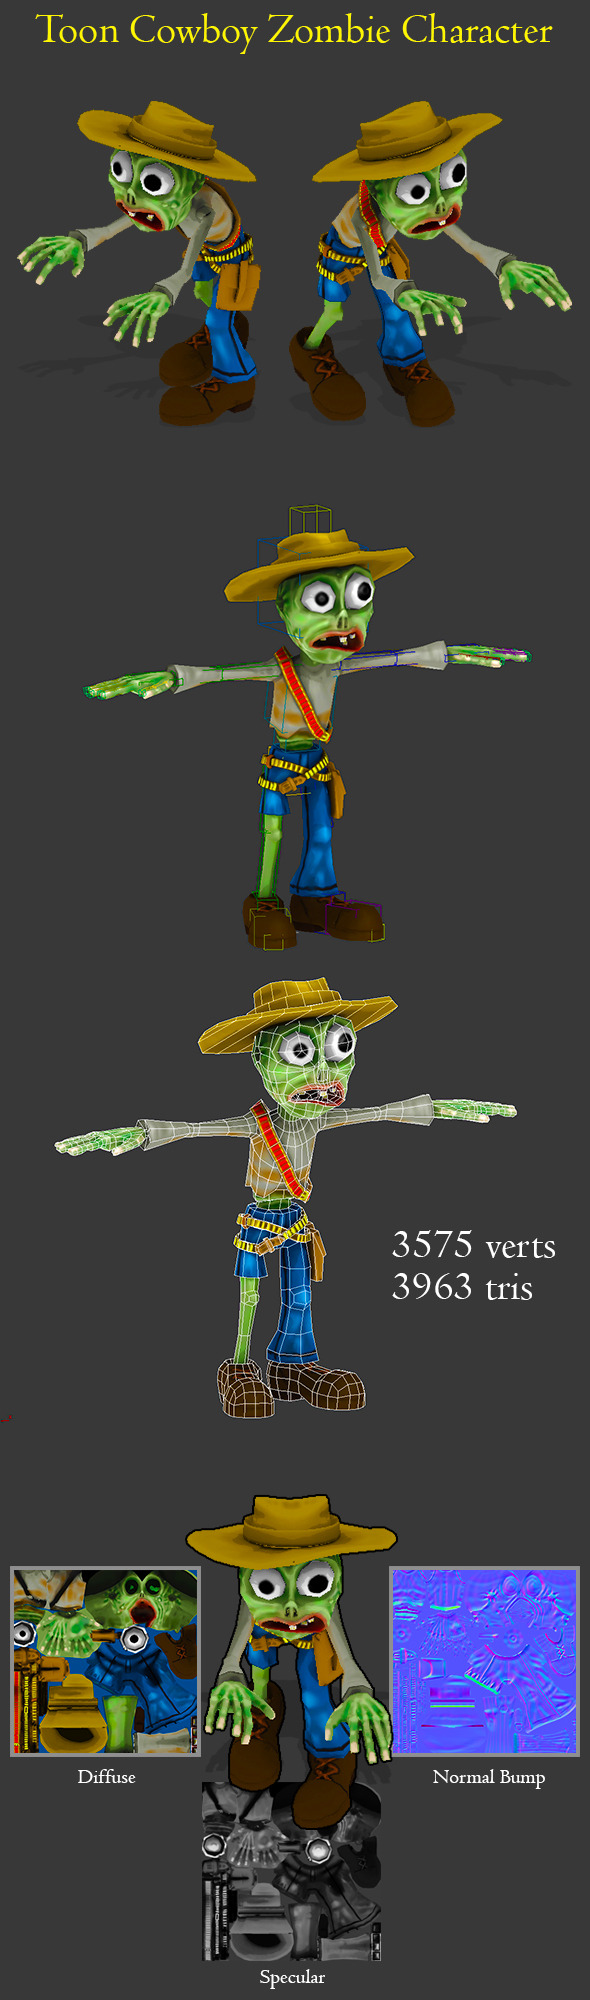 3DOcean Toon Cowboy Zombie Character 7655662